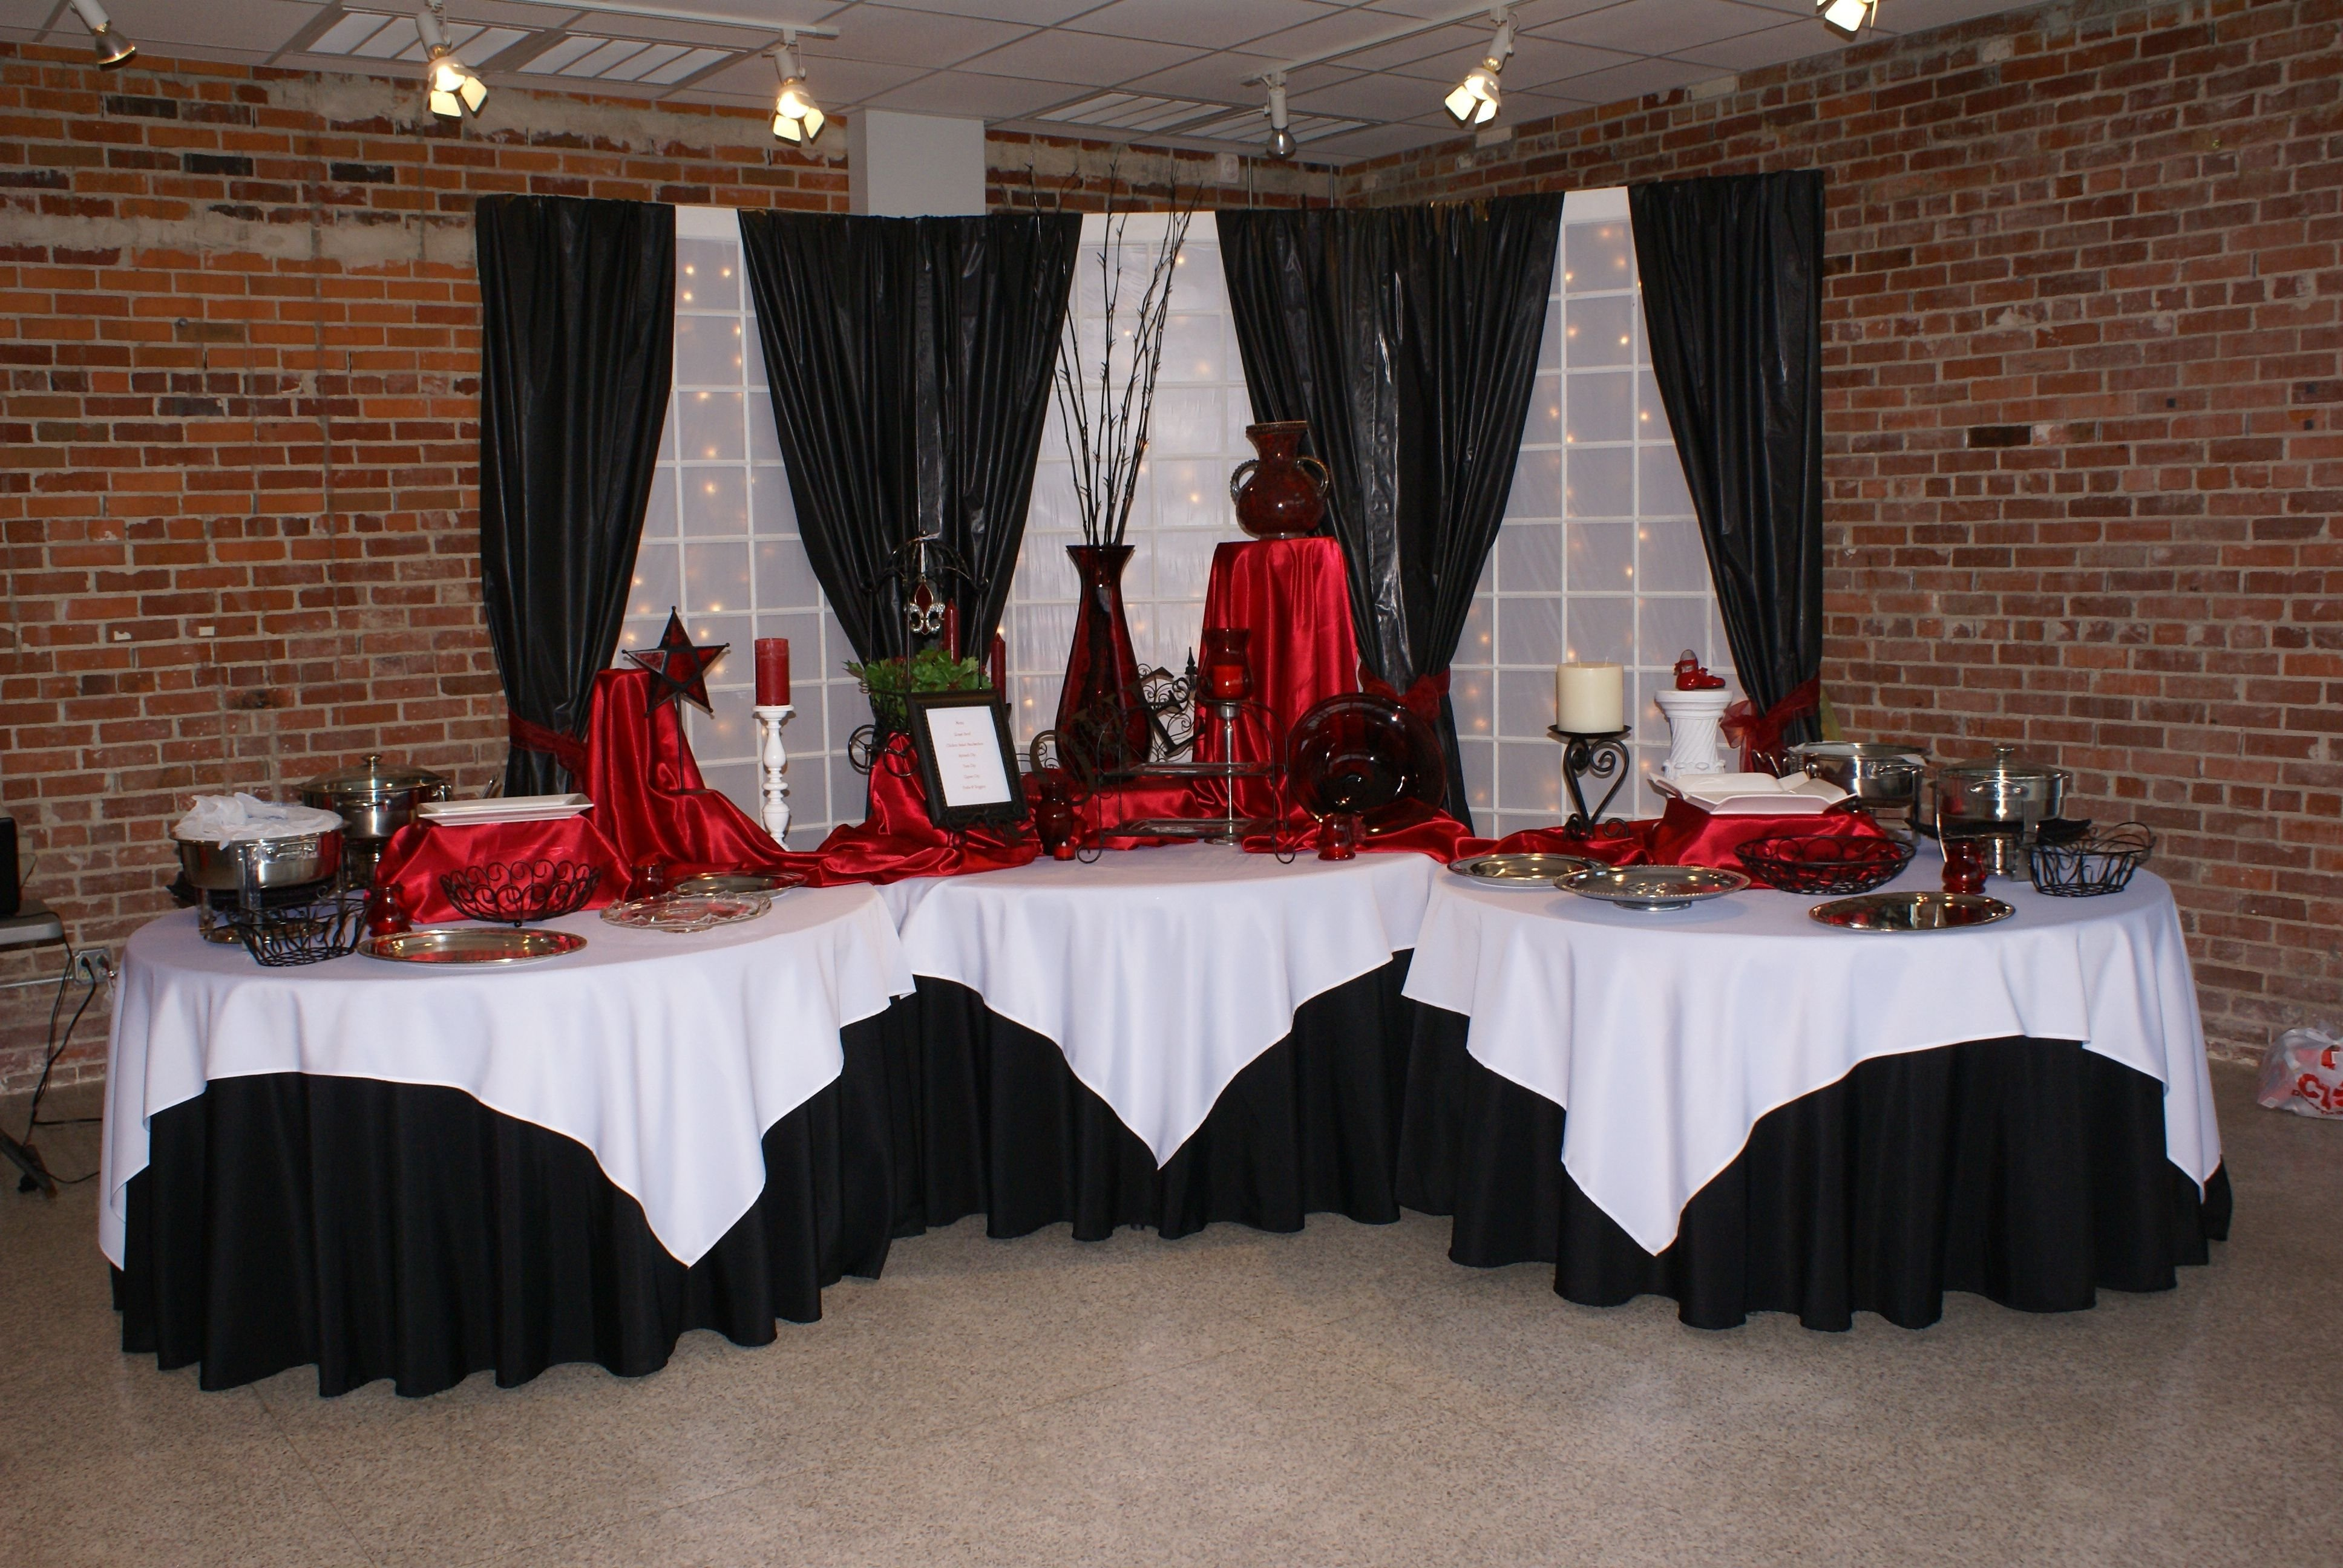 10 Perfect Red White And Black Wedding Ideas black and red wedding decorations ideaste silver cake magnificent 2020